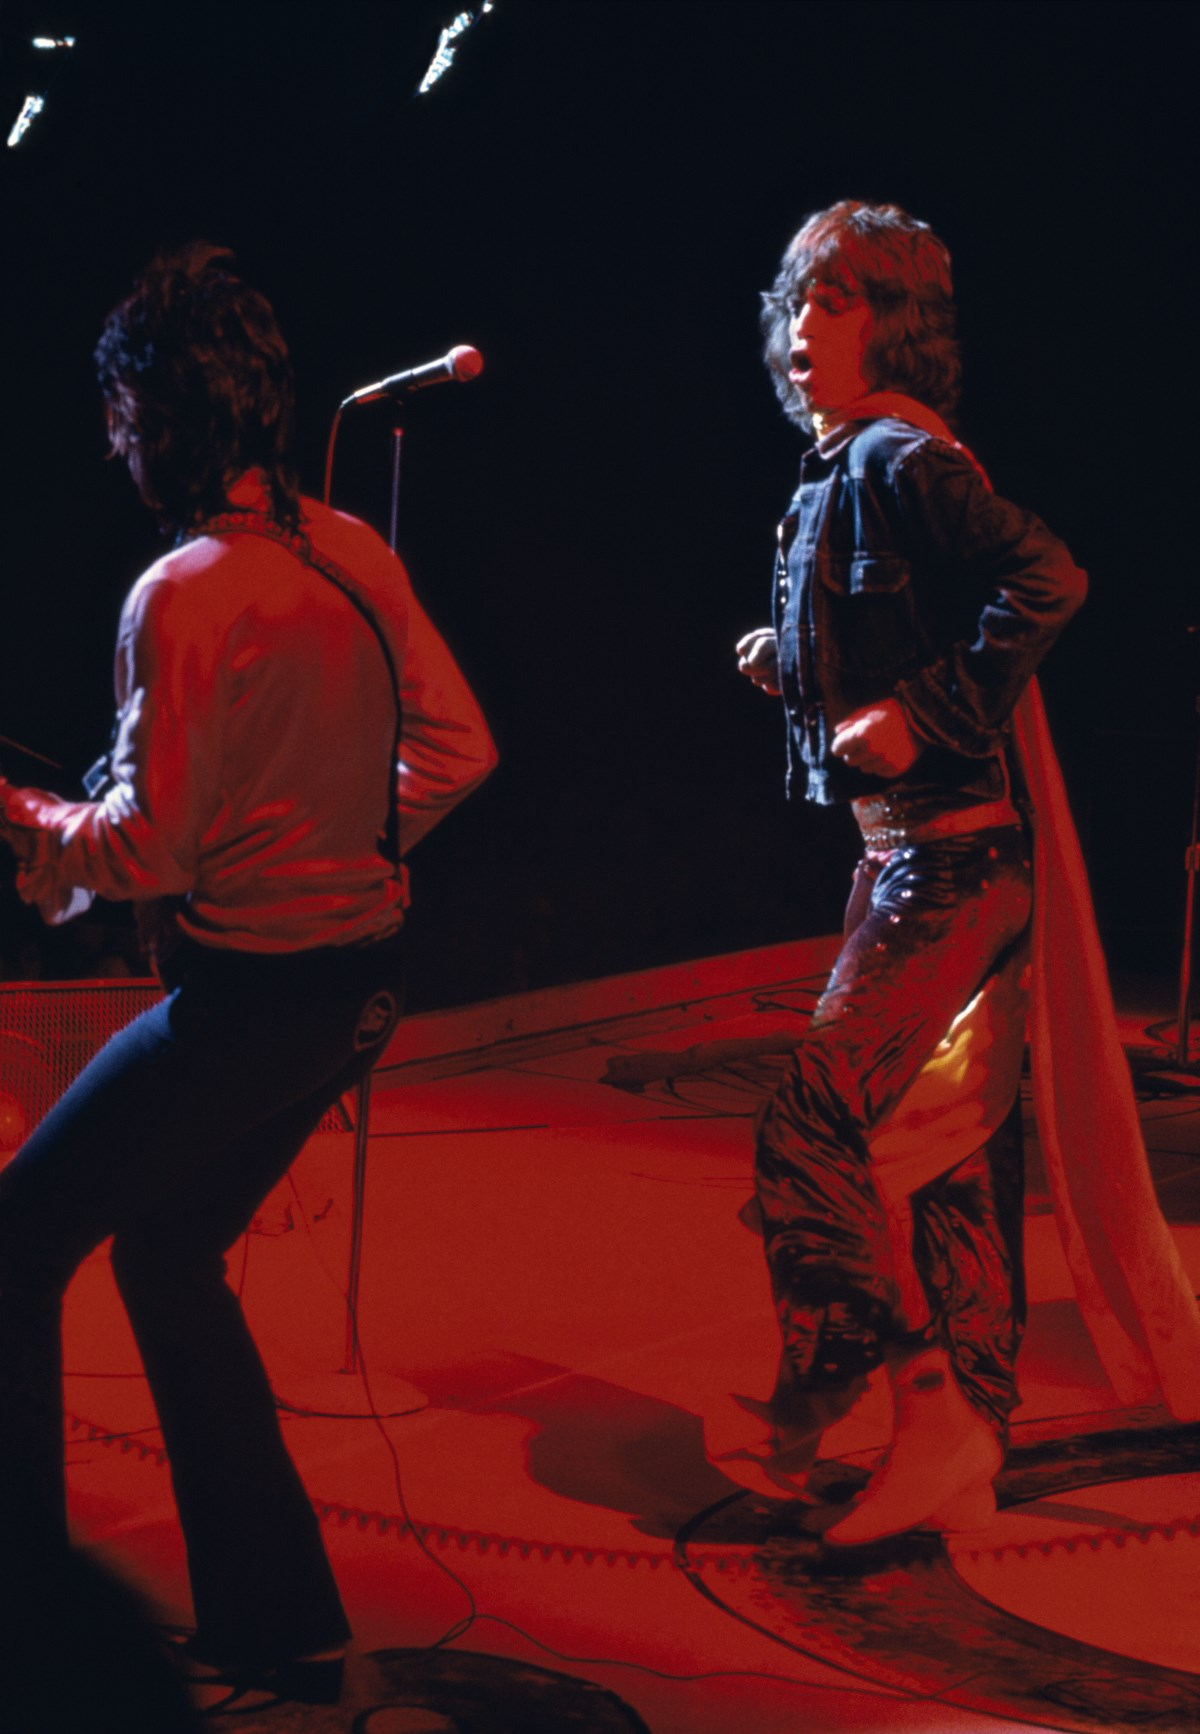 Mick Jagger and Keith Richards, USA, June 1972 - Galerie XII